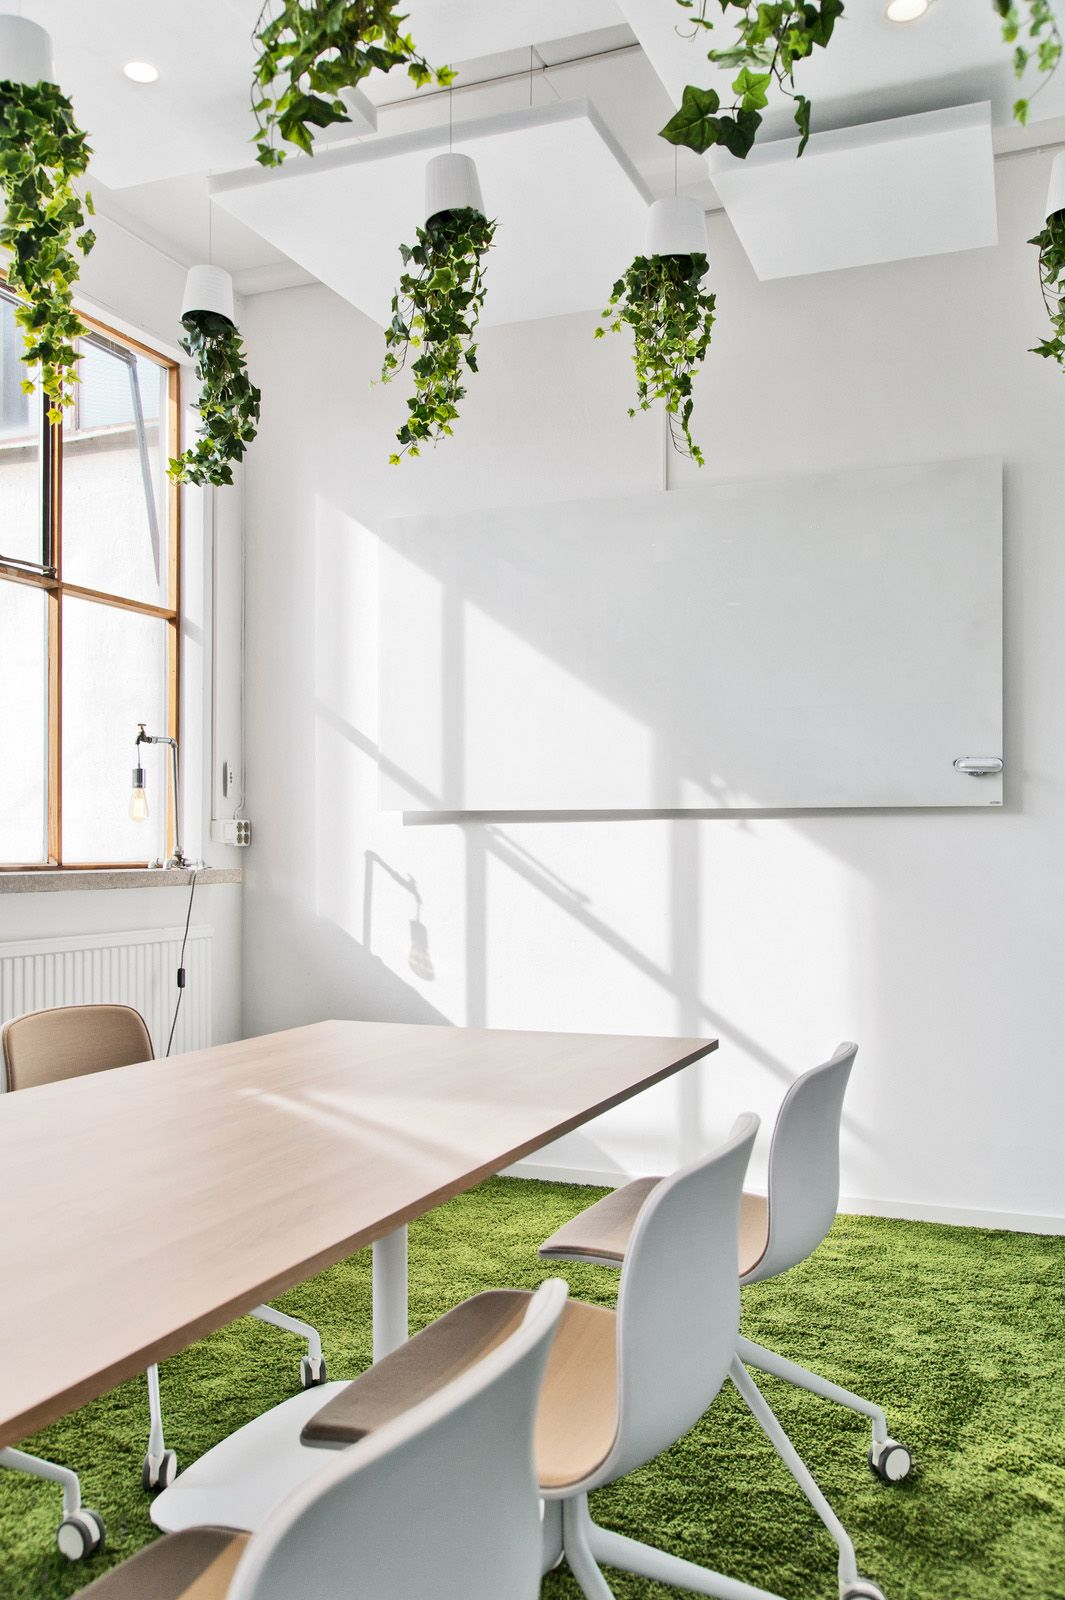 Green Interior Ideas For Your Home: Pin On Biophilic Design: Plants, Green Walls, Greenery